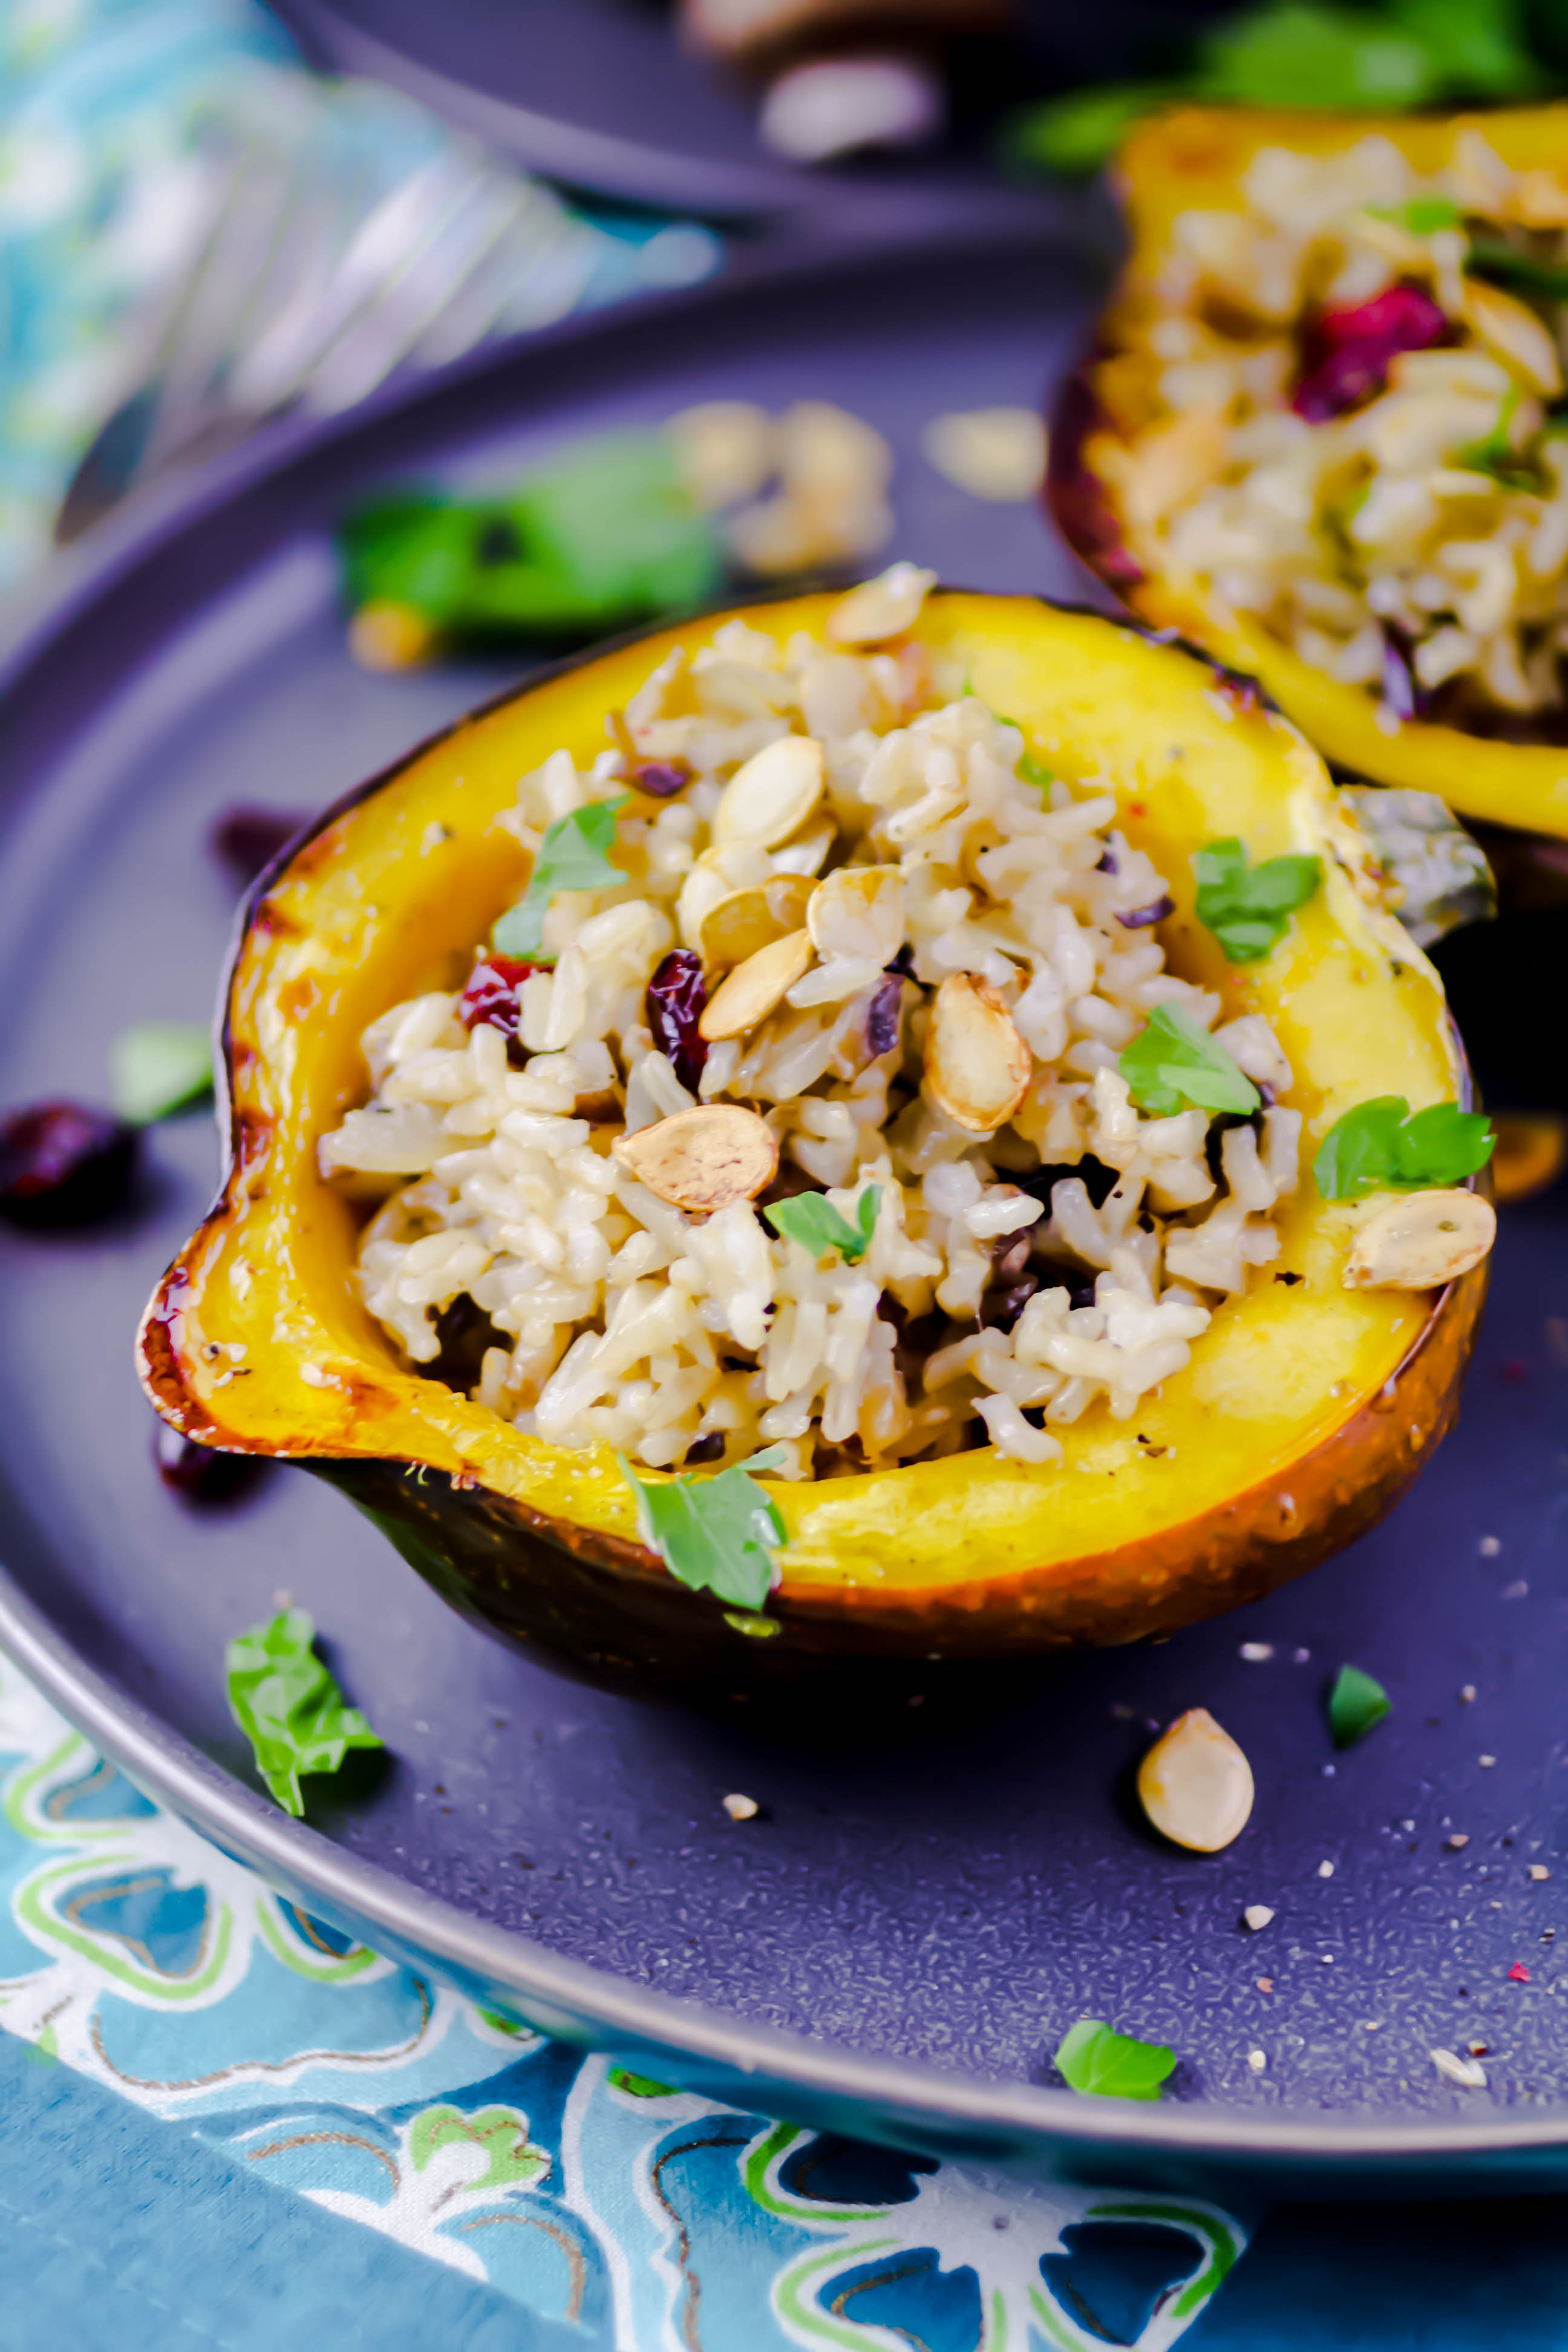 Acorn Squash Stuffed with Brown Rice, Mushrooms, and Cranberries is a lovely meal. Acorn Squash Stuffed with Brown Rice, Mushrooms, and Cranberries is a fun dish to serve -- and it tastes great, too!